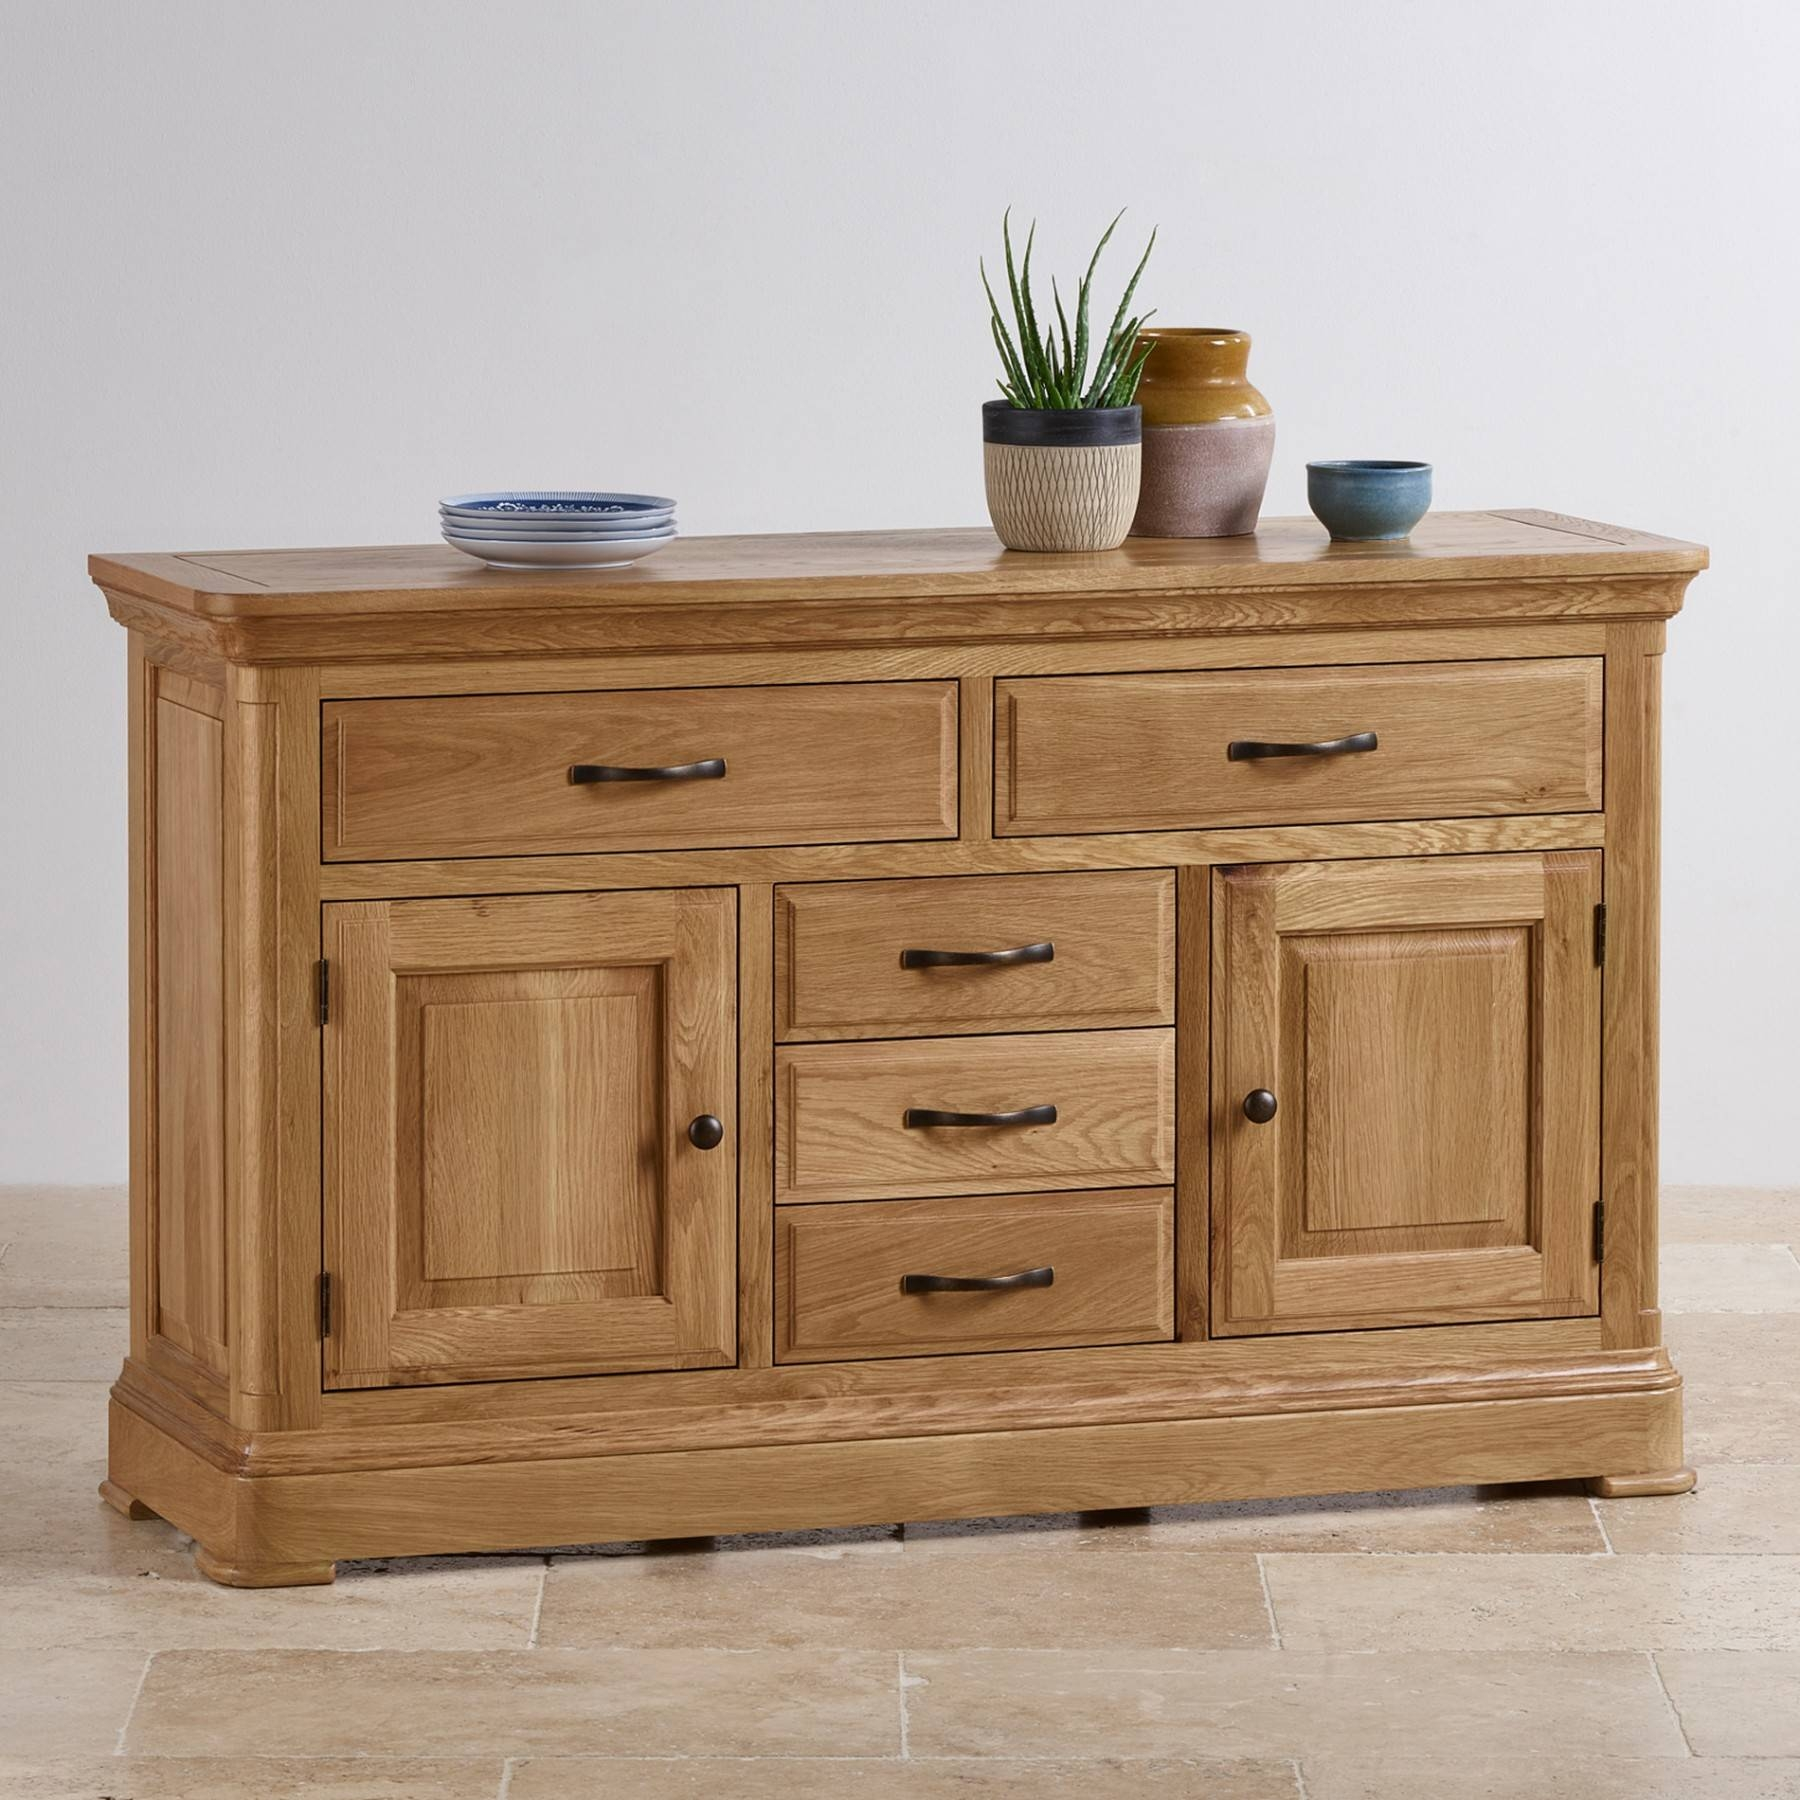 Canterbury Natural Solid Oak Large Sideboard | Sideboards | Dining Pertaining To Recent Dovetail Sideboards (#3 of 15)